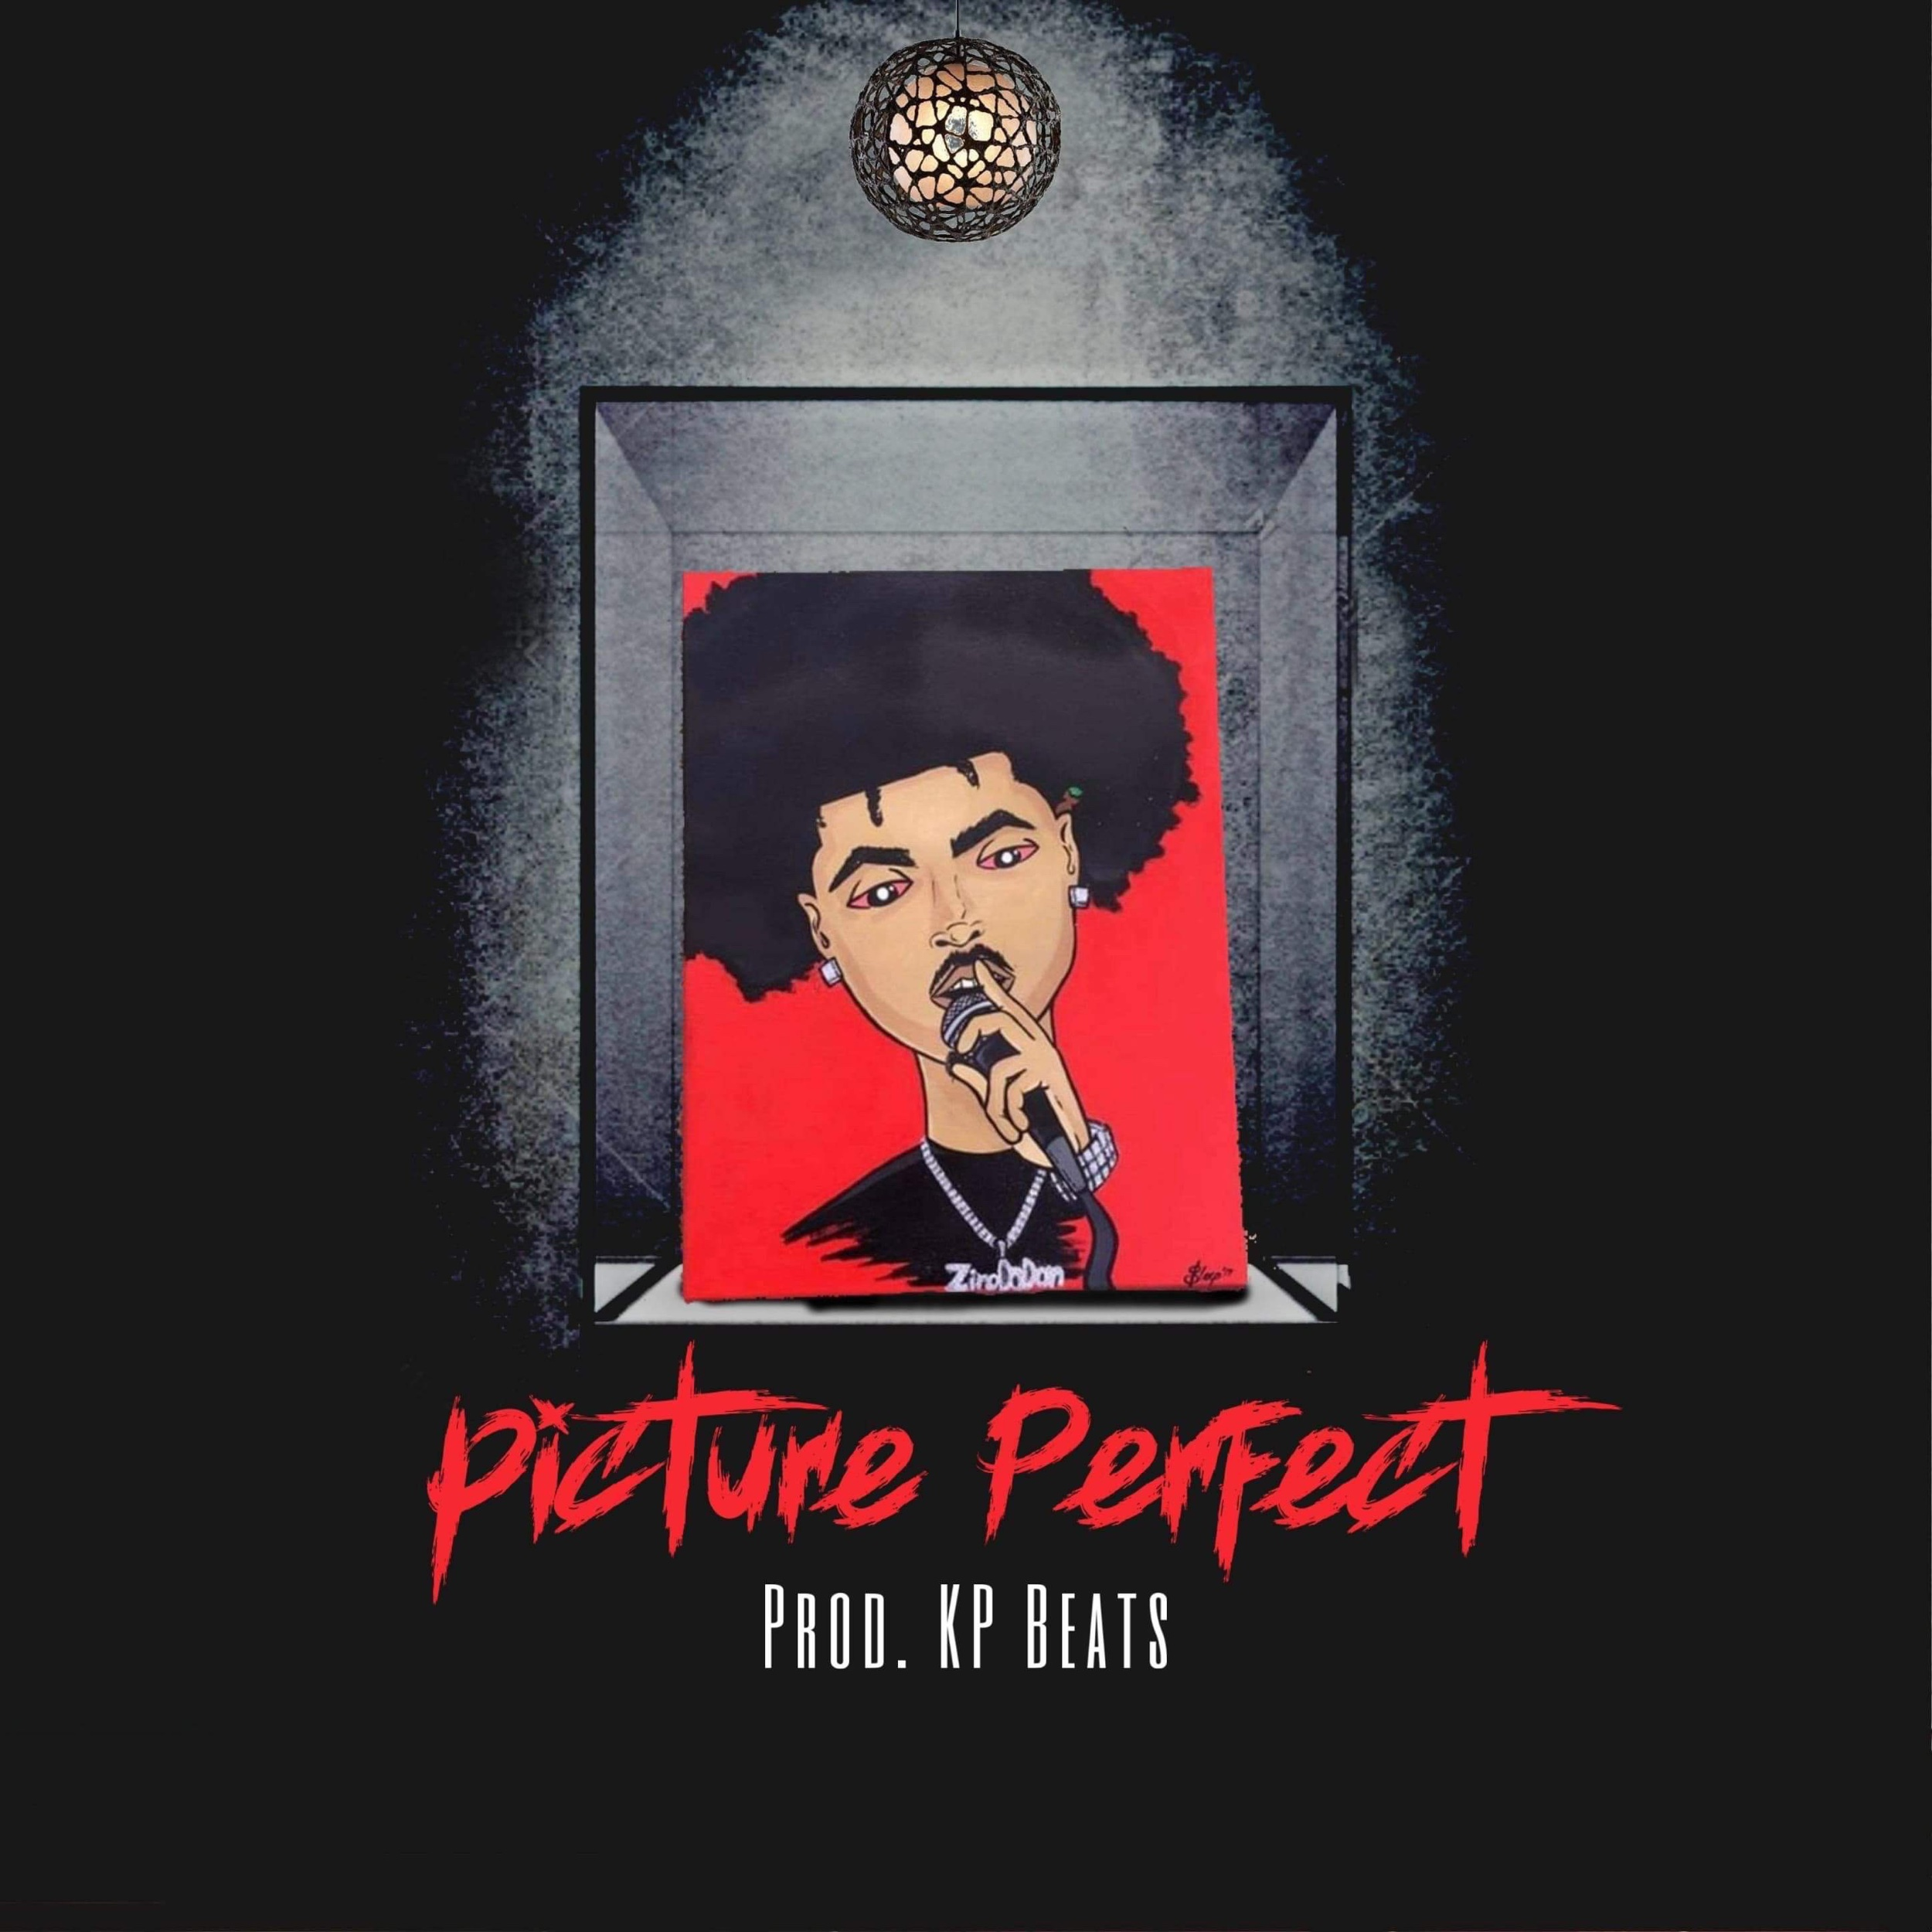 Zino's upcoming project titled 'Picture Perfect' to be released August 9th, 2019. Cover Art was provided by SleepVangogh, while production of the project is attributed to KP Beats.